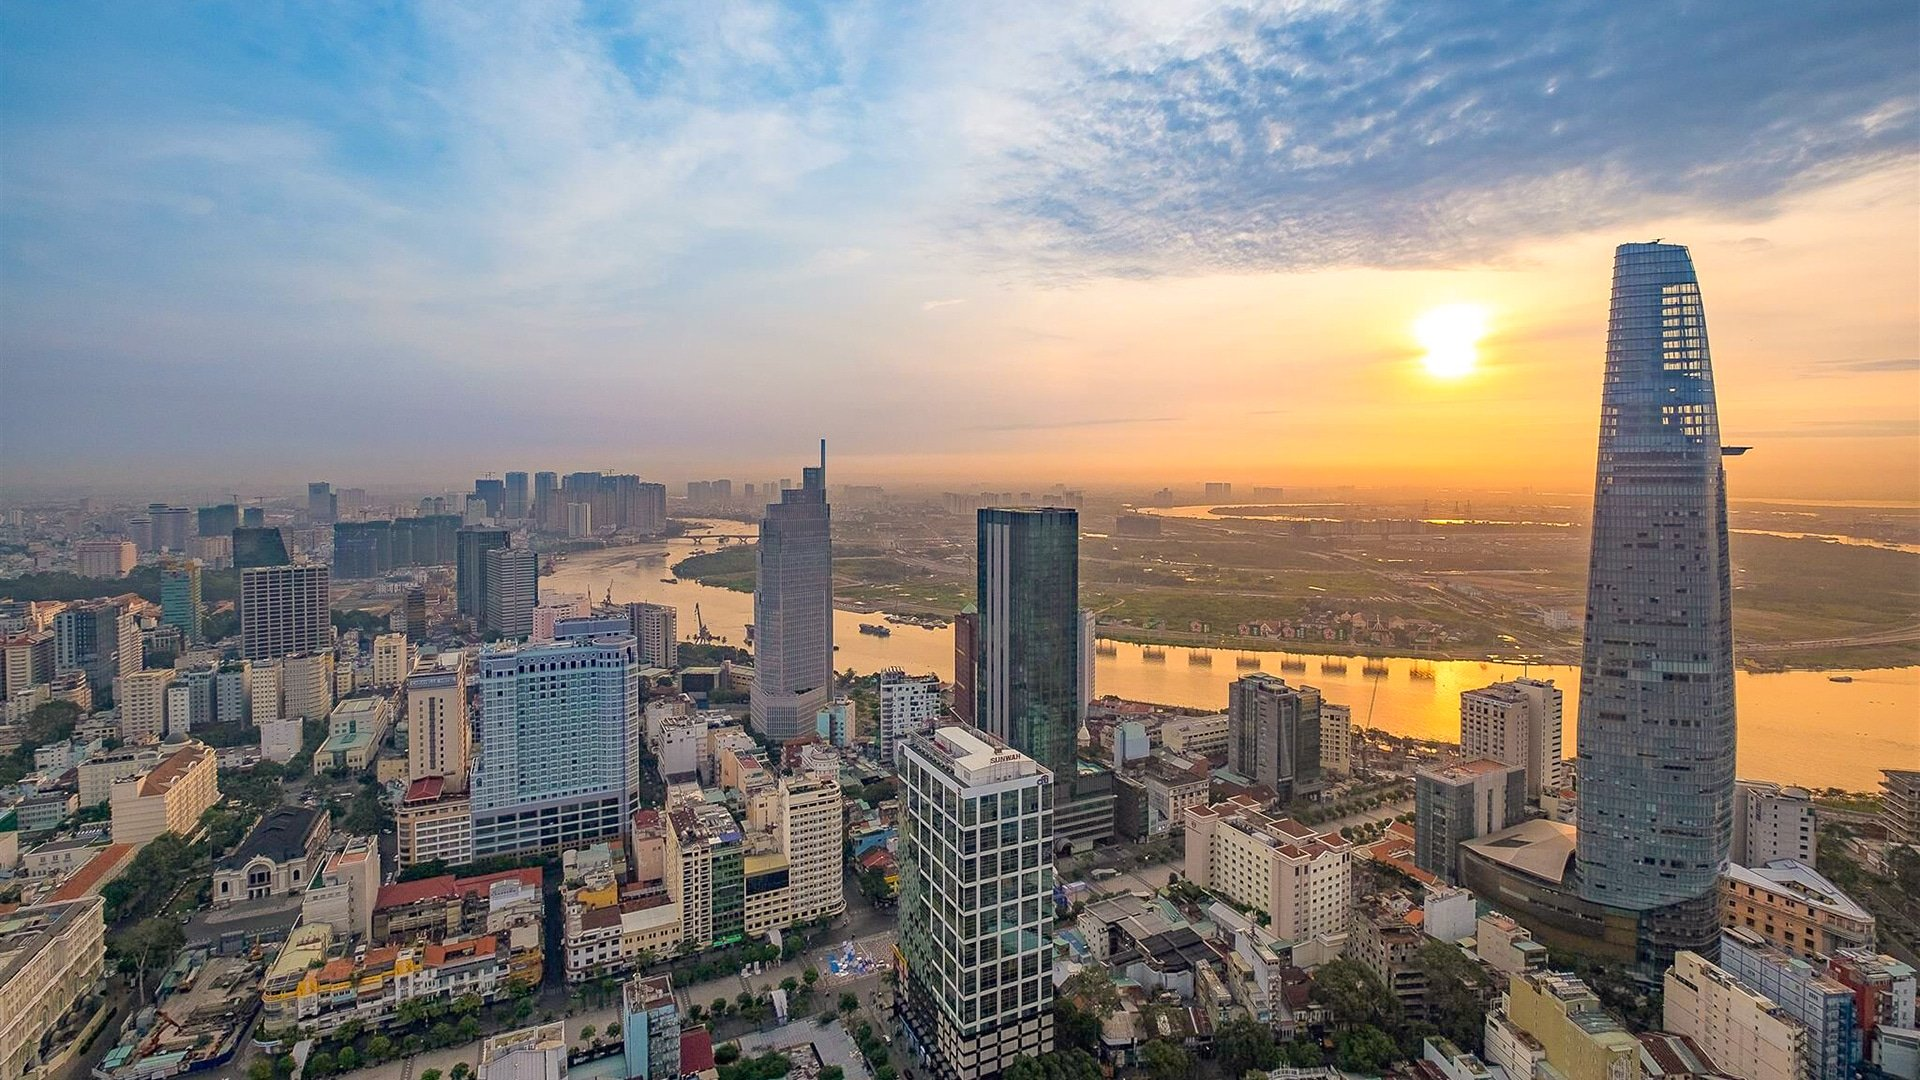 Ho Chi Minh city - a great place to start new chapter